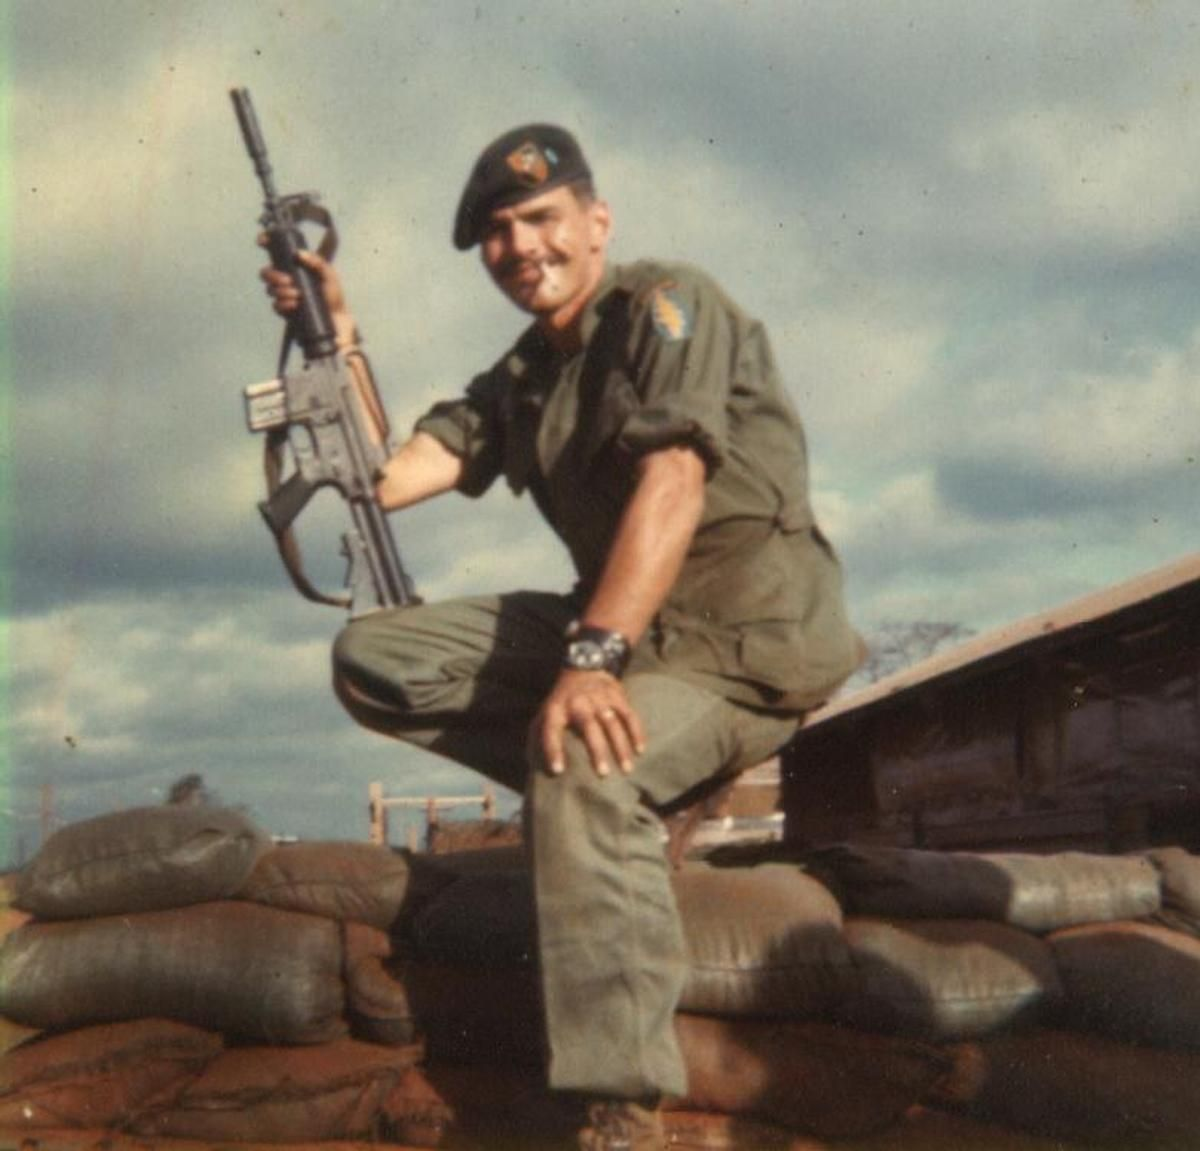 My kid brother loved this poito 1969 Army Vietnam SOA/CCS, 5th SFG(A) Ban Me Thout